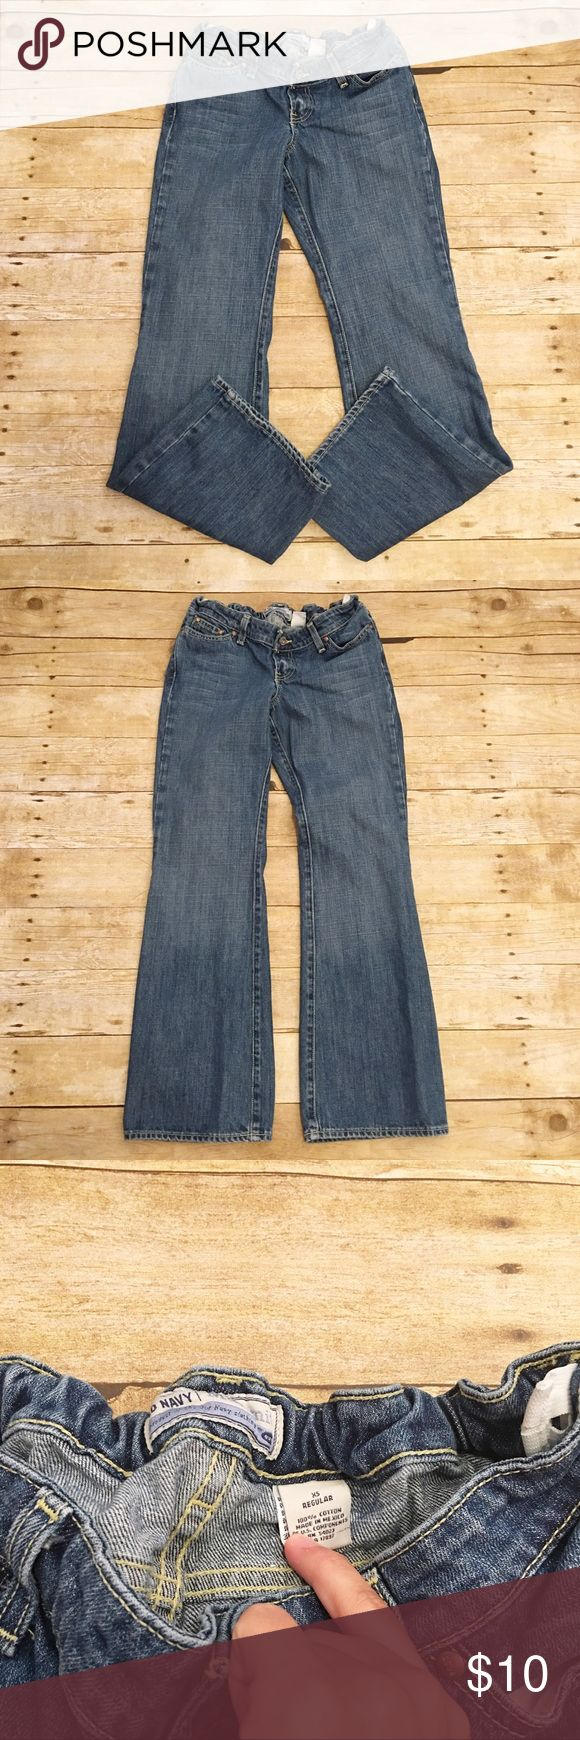 Old Navy XS regular maternity jeans Very good condition Old Navy maternity jeans in a size XS. Very comfortable! There are adjustable straps on the inside. No major flaws. Inseam- approximately 29 inches. Old Navy Jeans Boot Cut